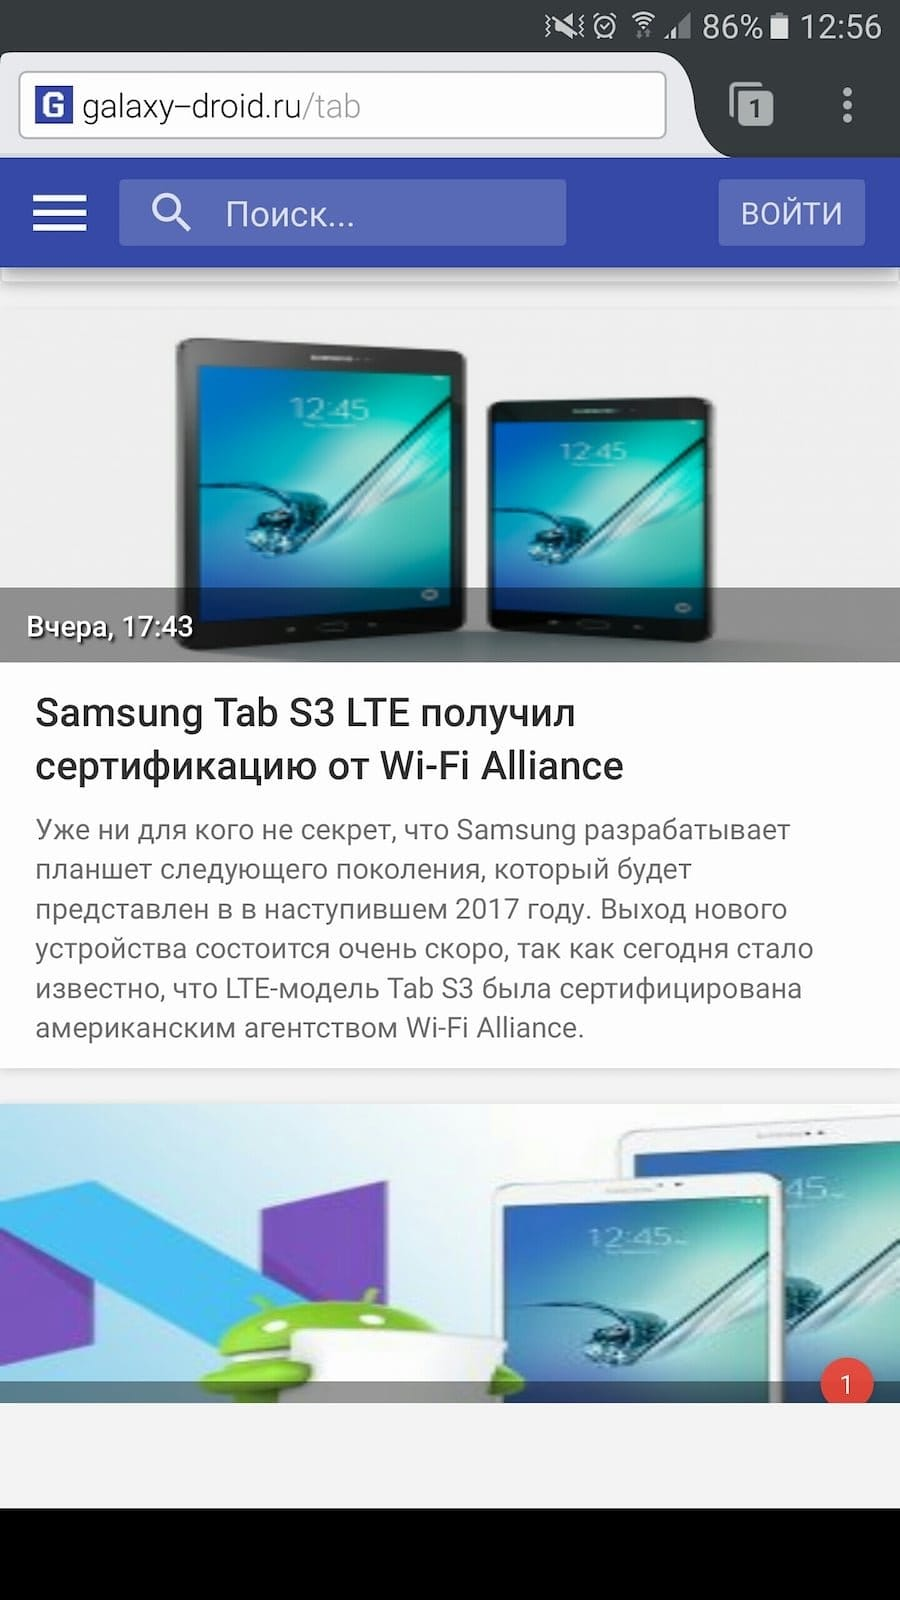 Flash Player Андроид 4.1.2